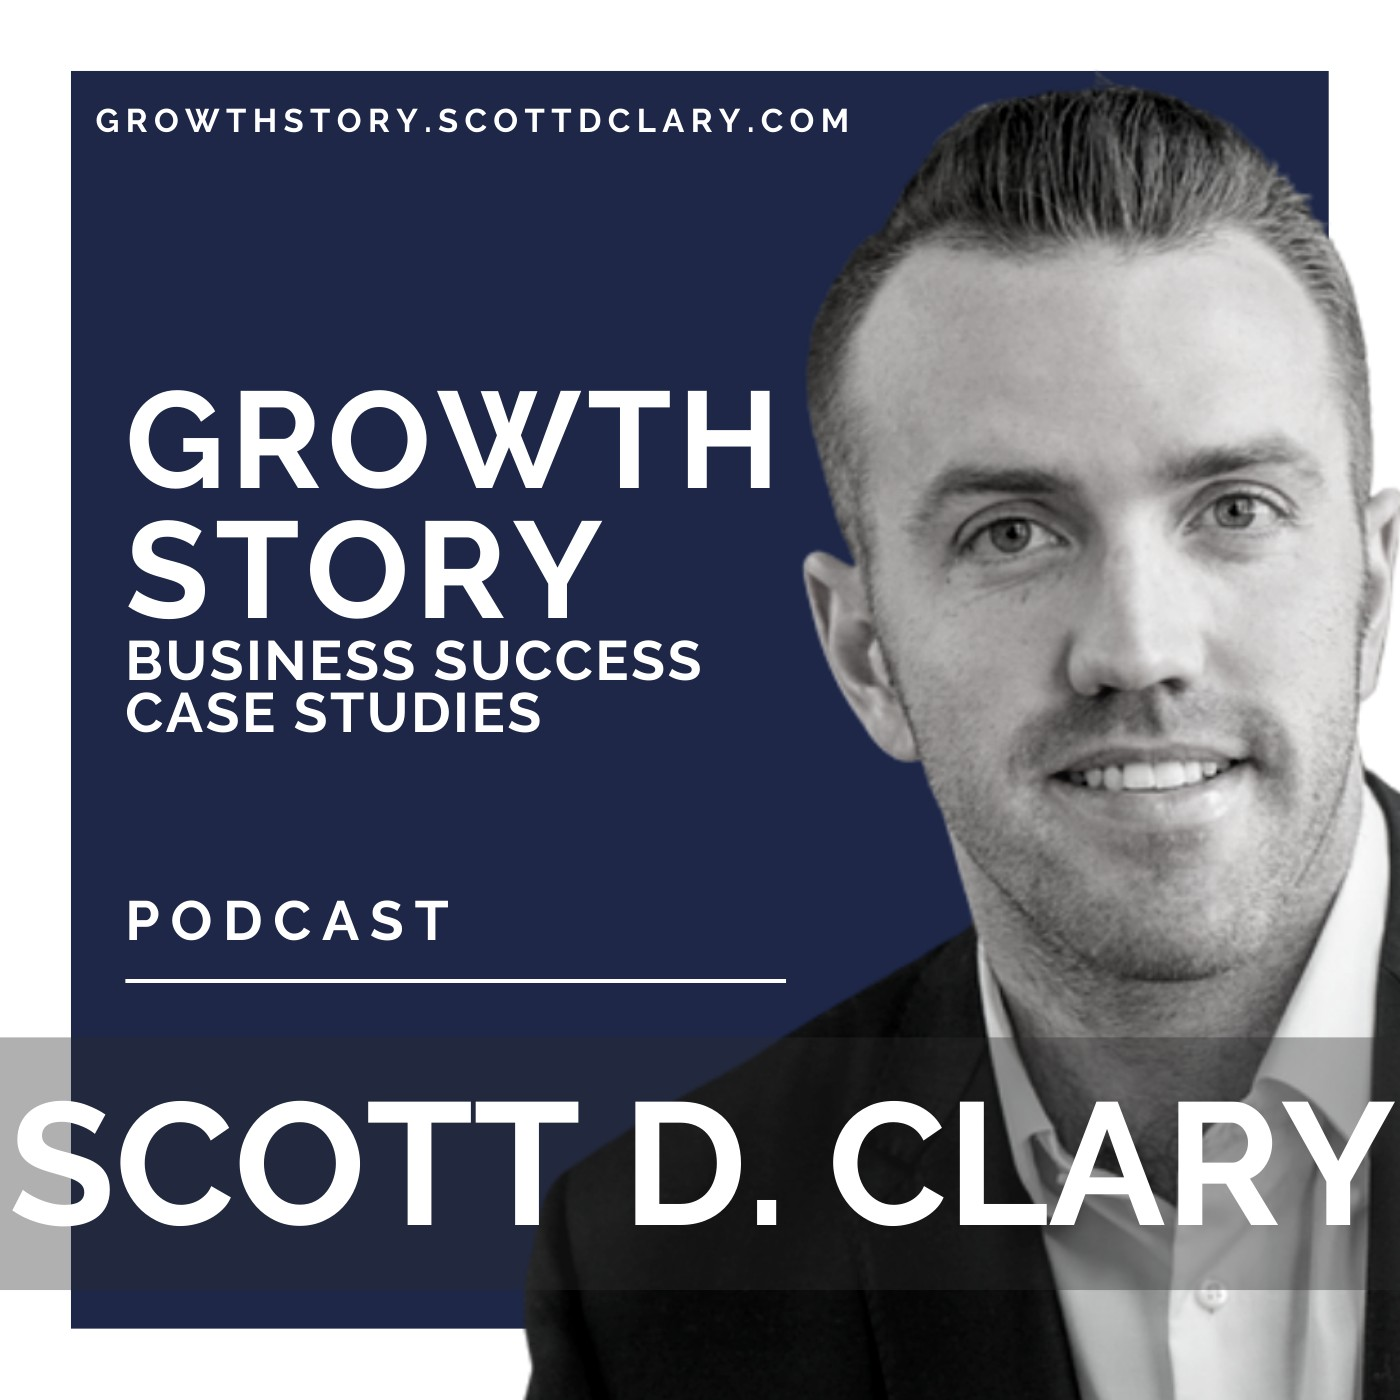 Growth Story - High Growth Company Case Studies With Scott D. Clary